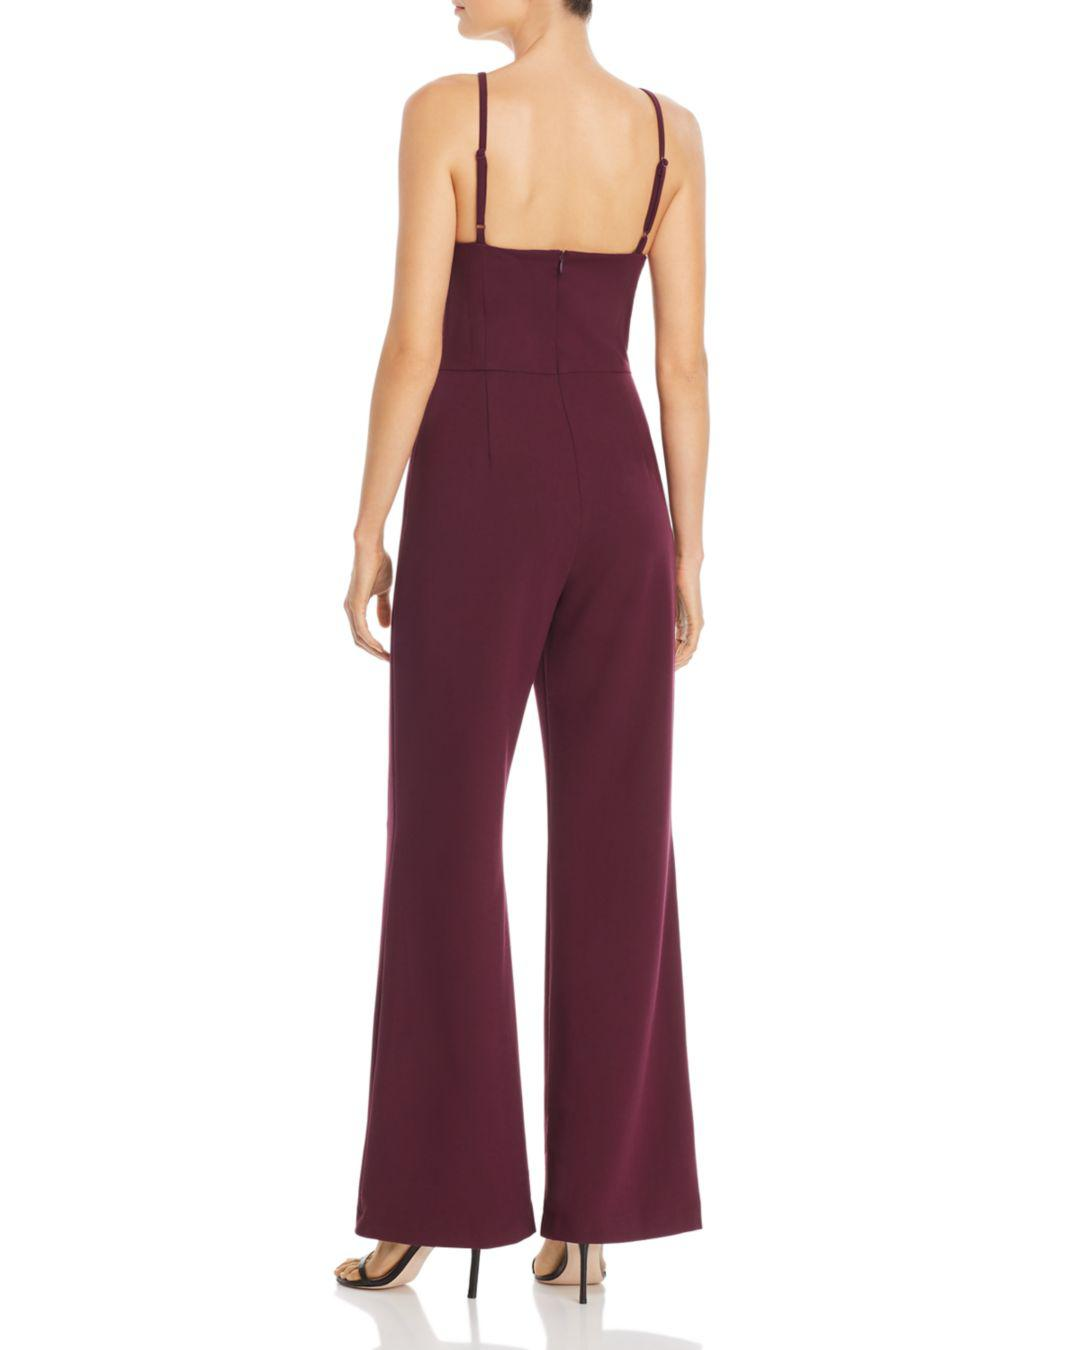 2ec31c051b3 French Connection Whisper Wide-leg Jumpsuit in Purple - Save  56.024096385542165% - Lyst